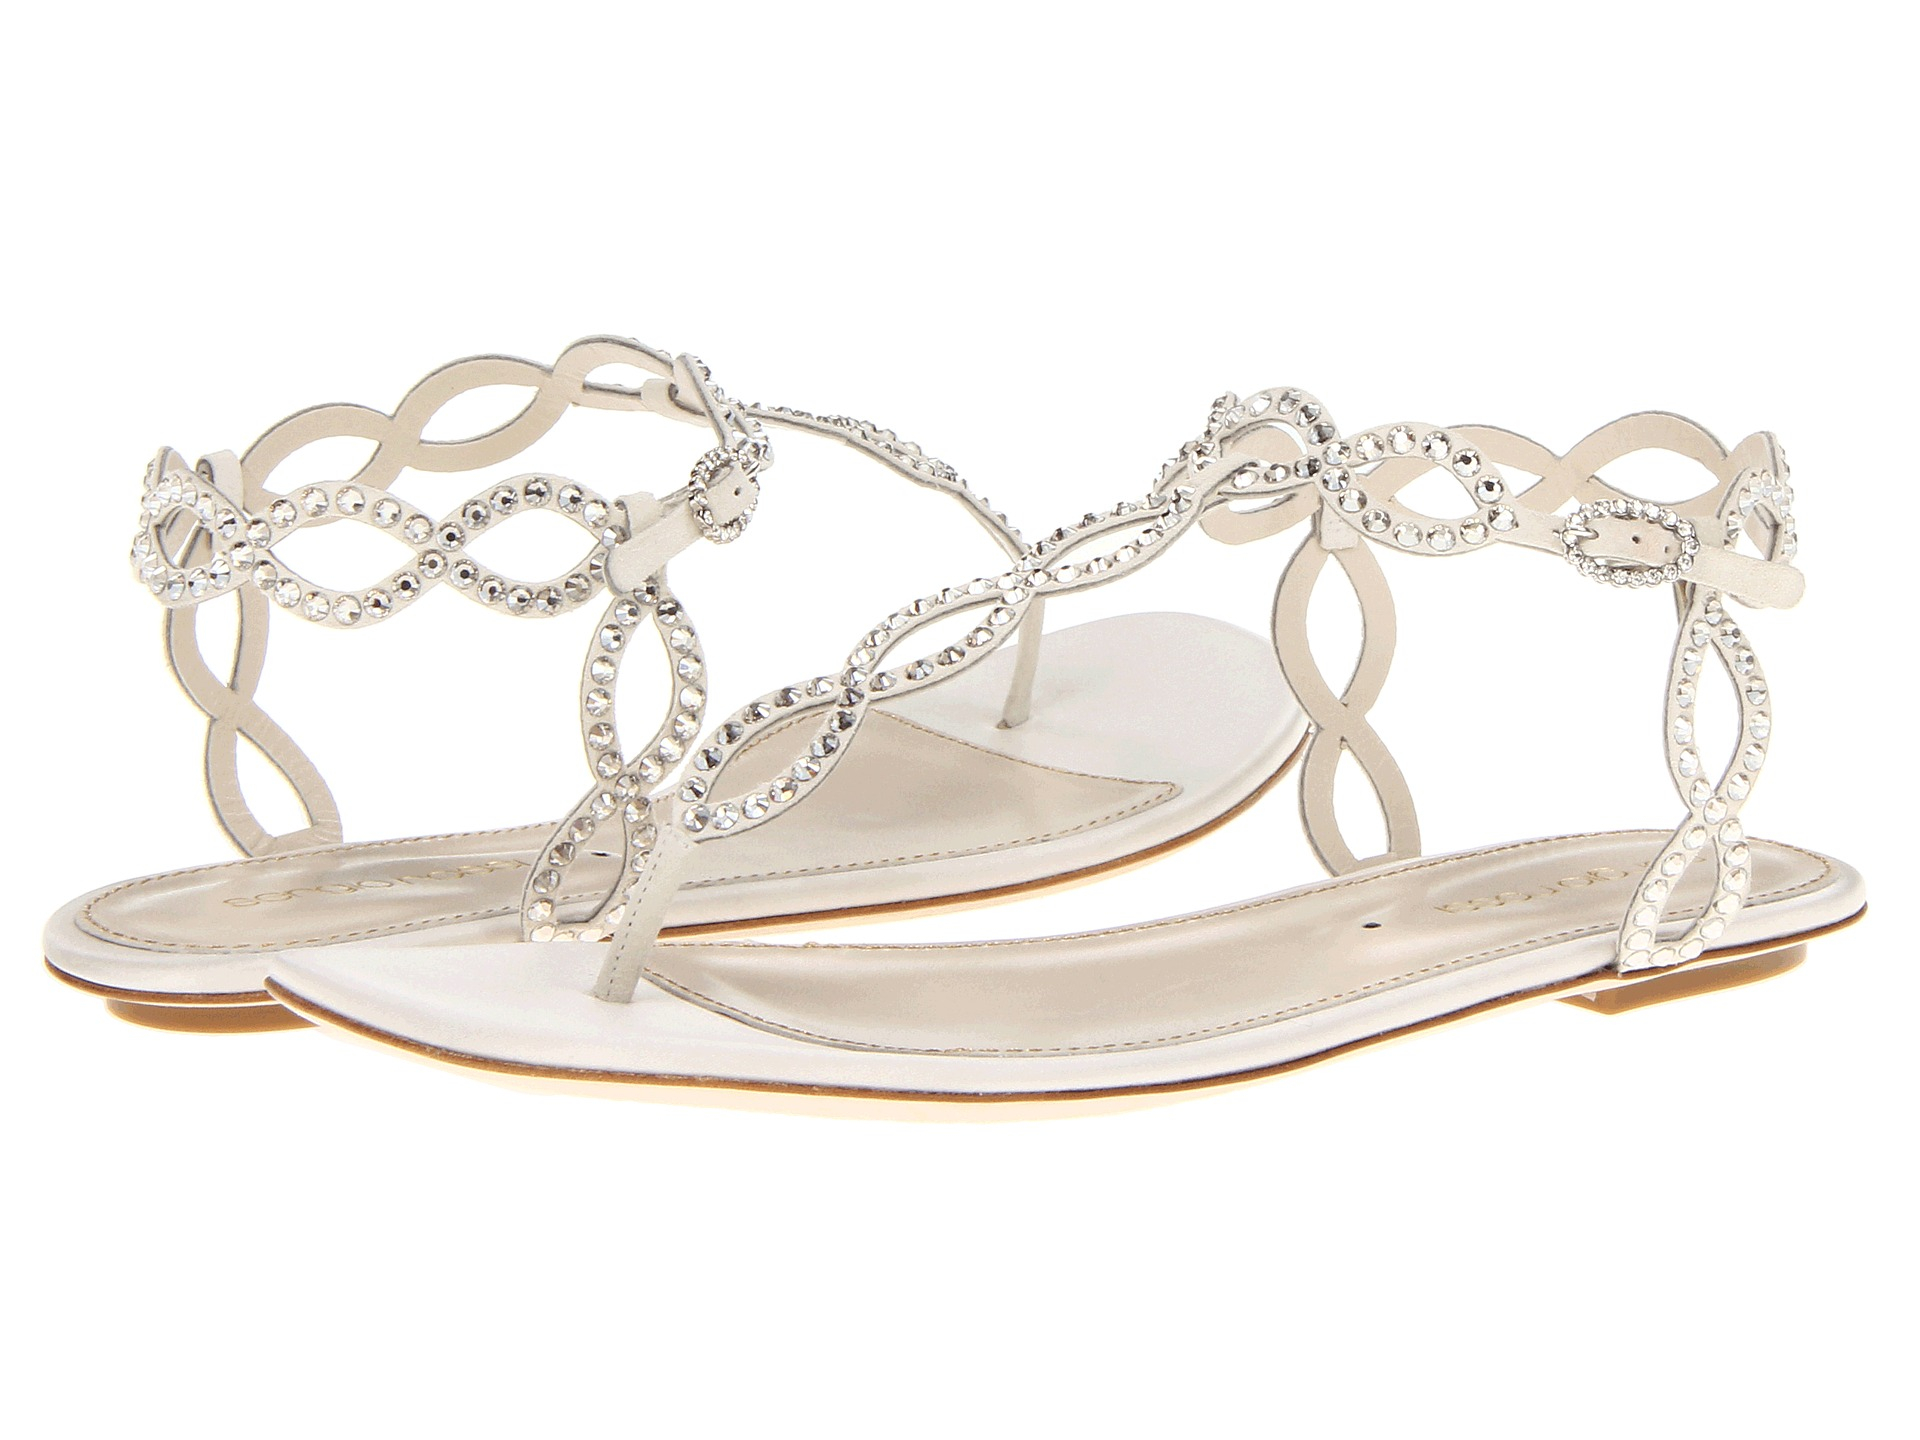 Lyst sergio rossi satin mermaid flat sandal in white for Flat dress sandals for weddings